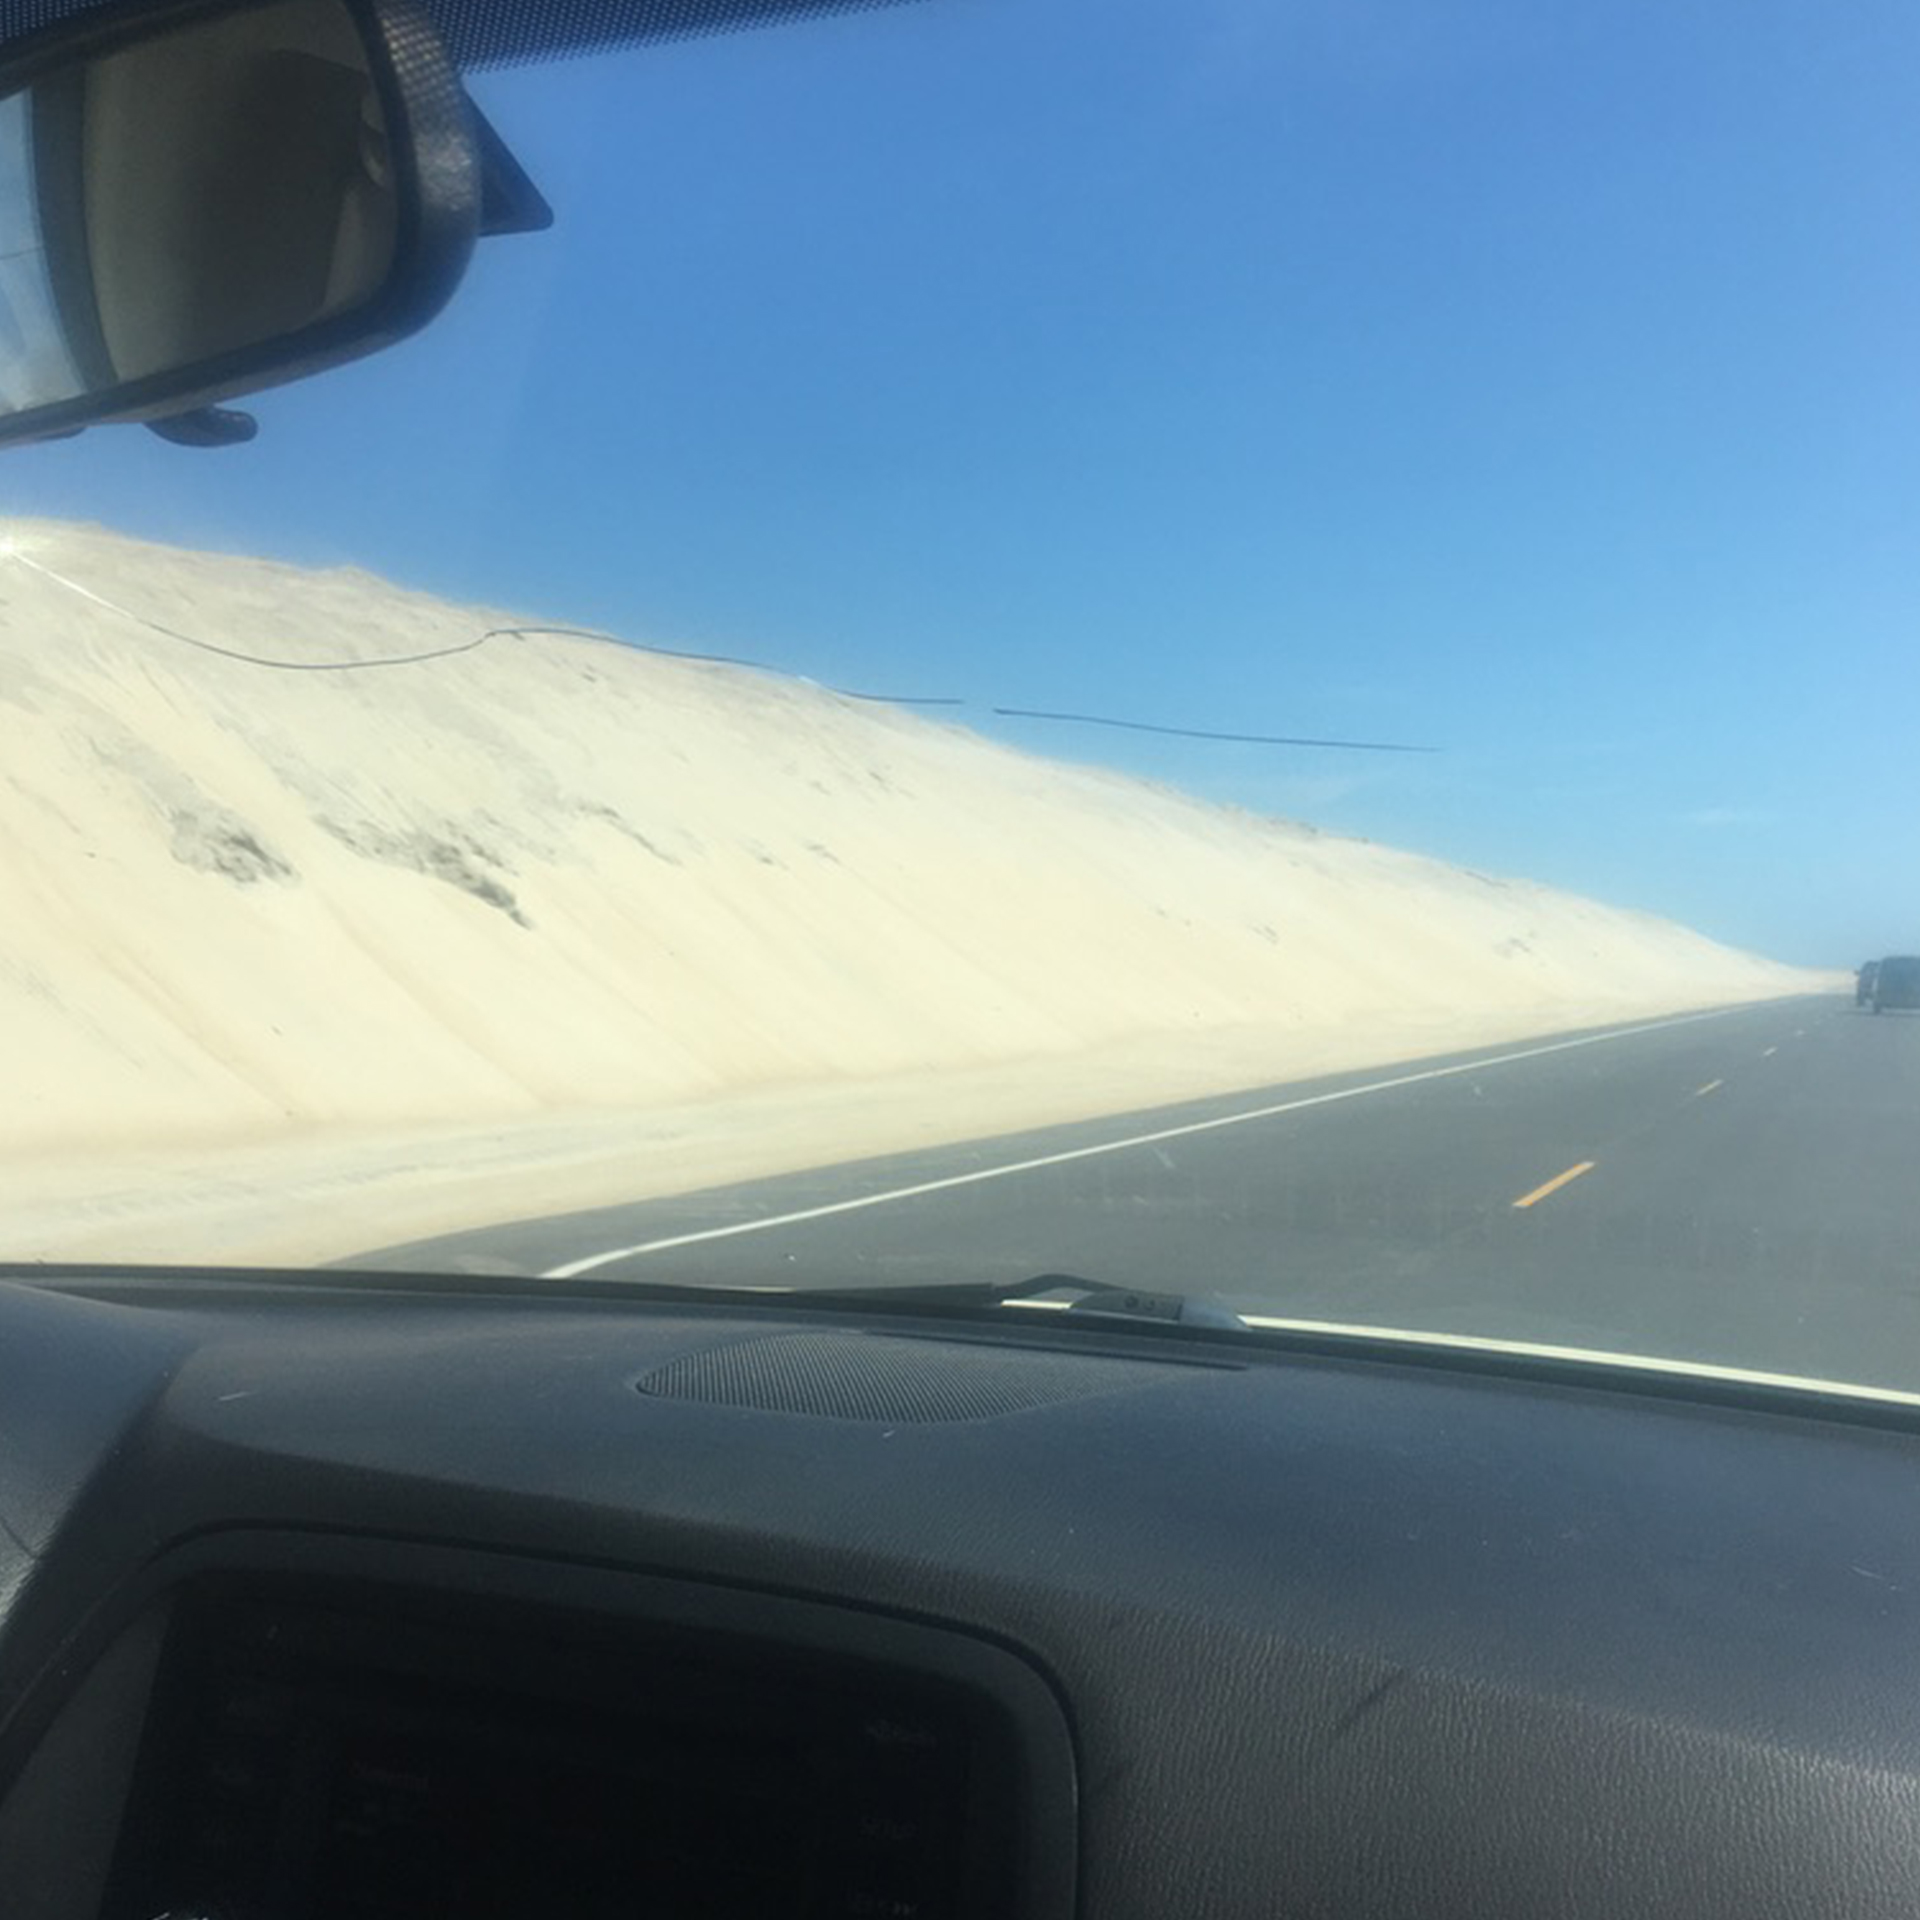 a road with a mountain of sand to the side, taken inside a car